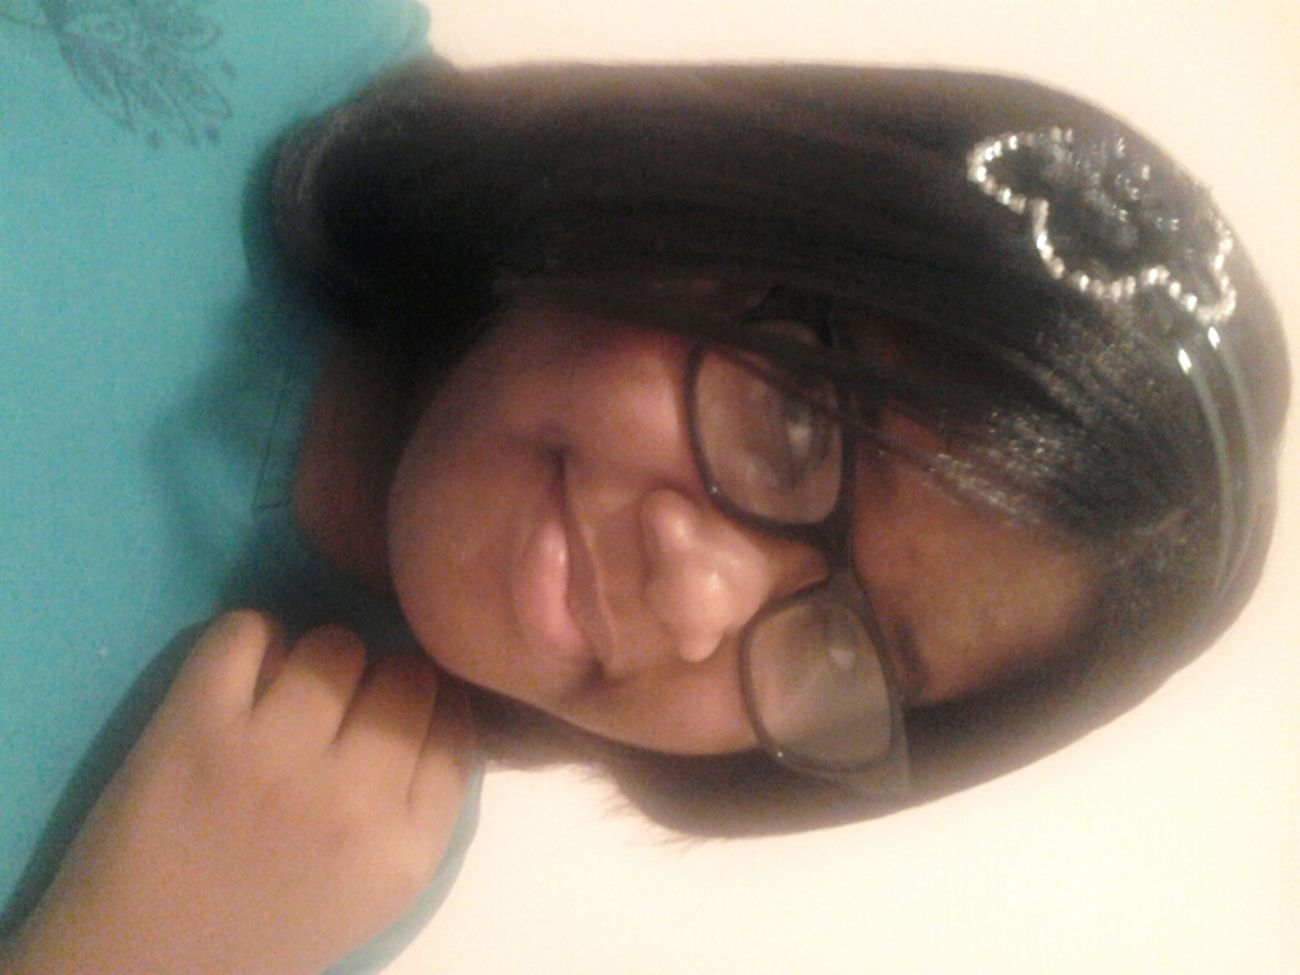 No Edits! Was Chillen And Did My Hair All By Myself ^_^